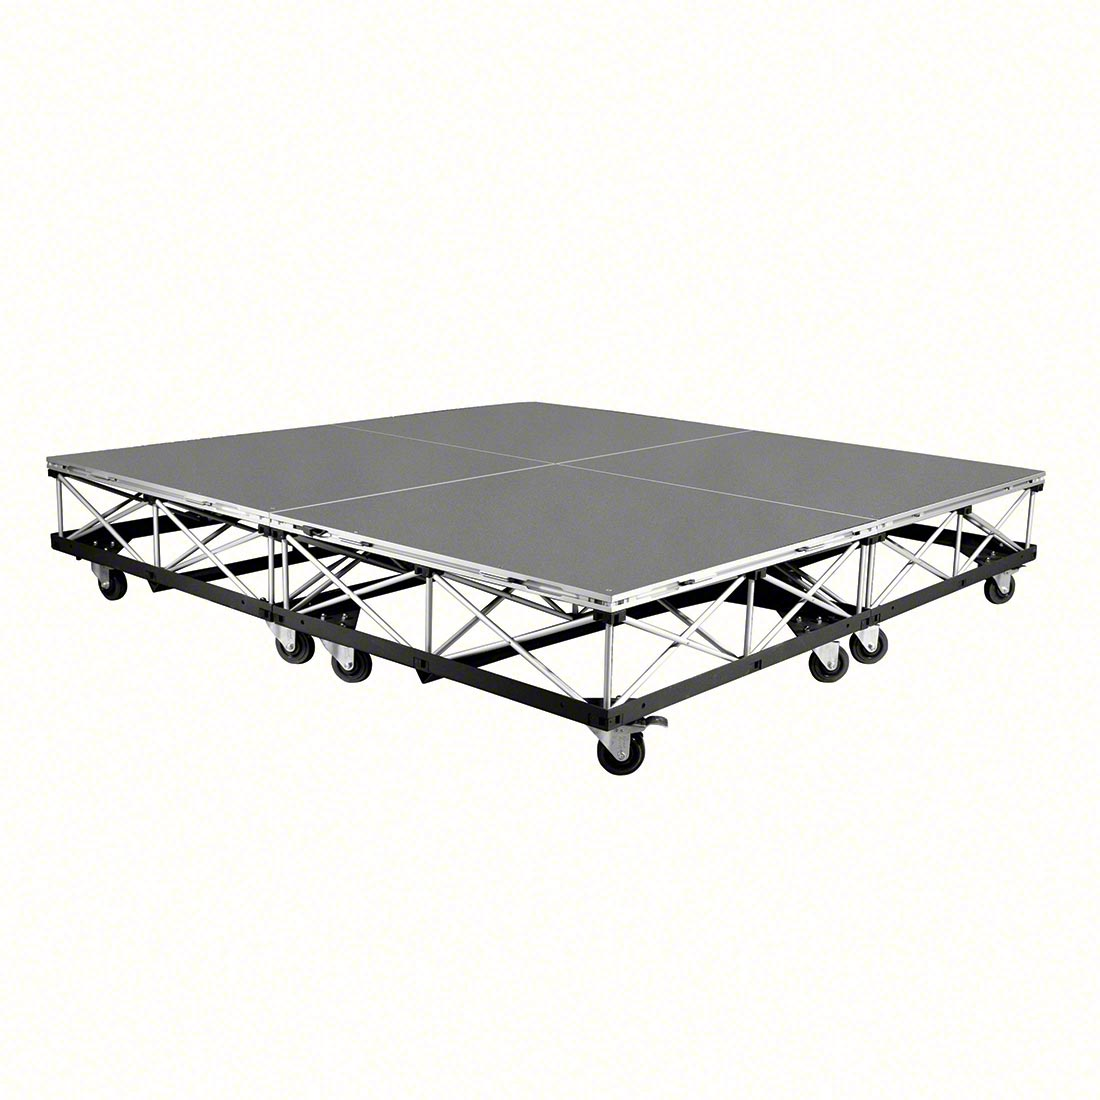 intellistage 8 x8 mobile drum riser on casters carpeted ismdrum64